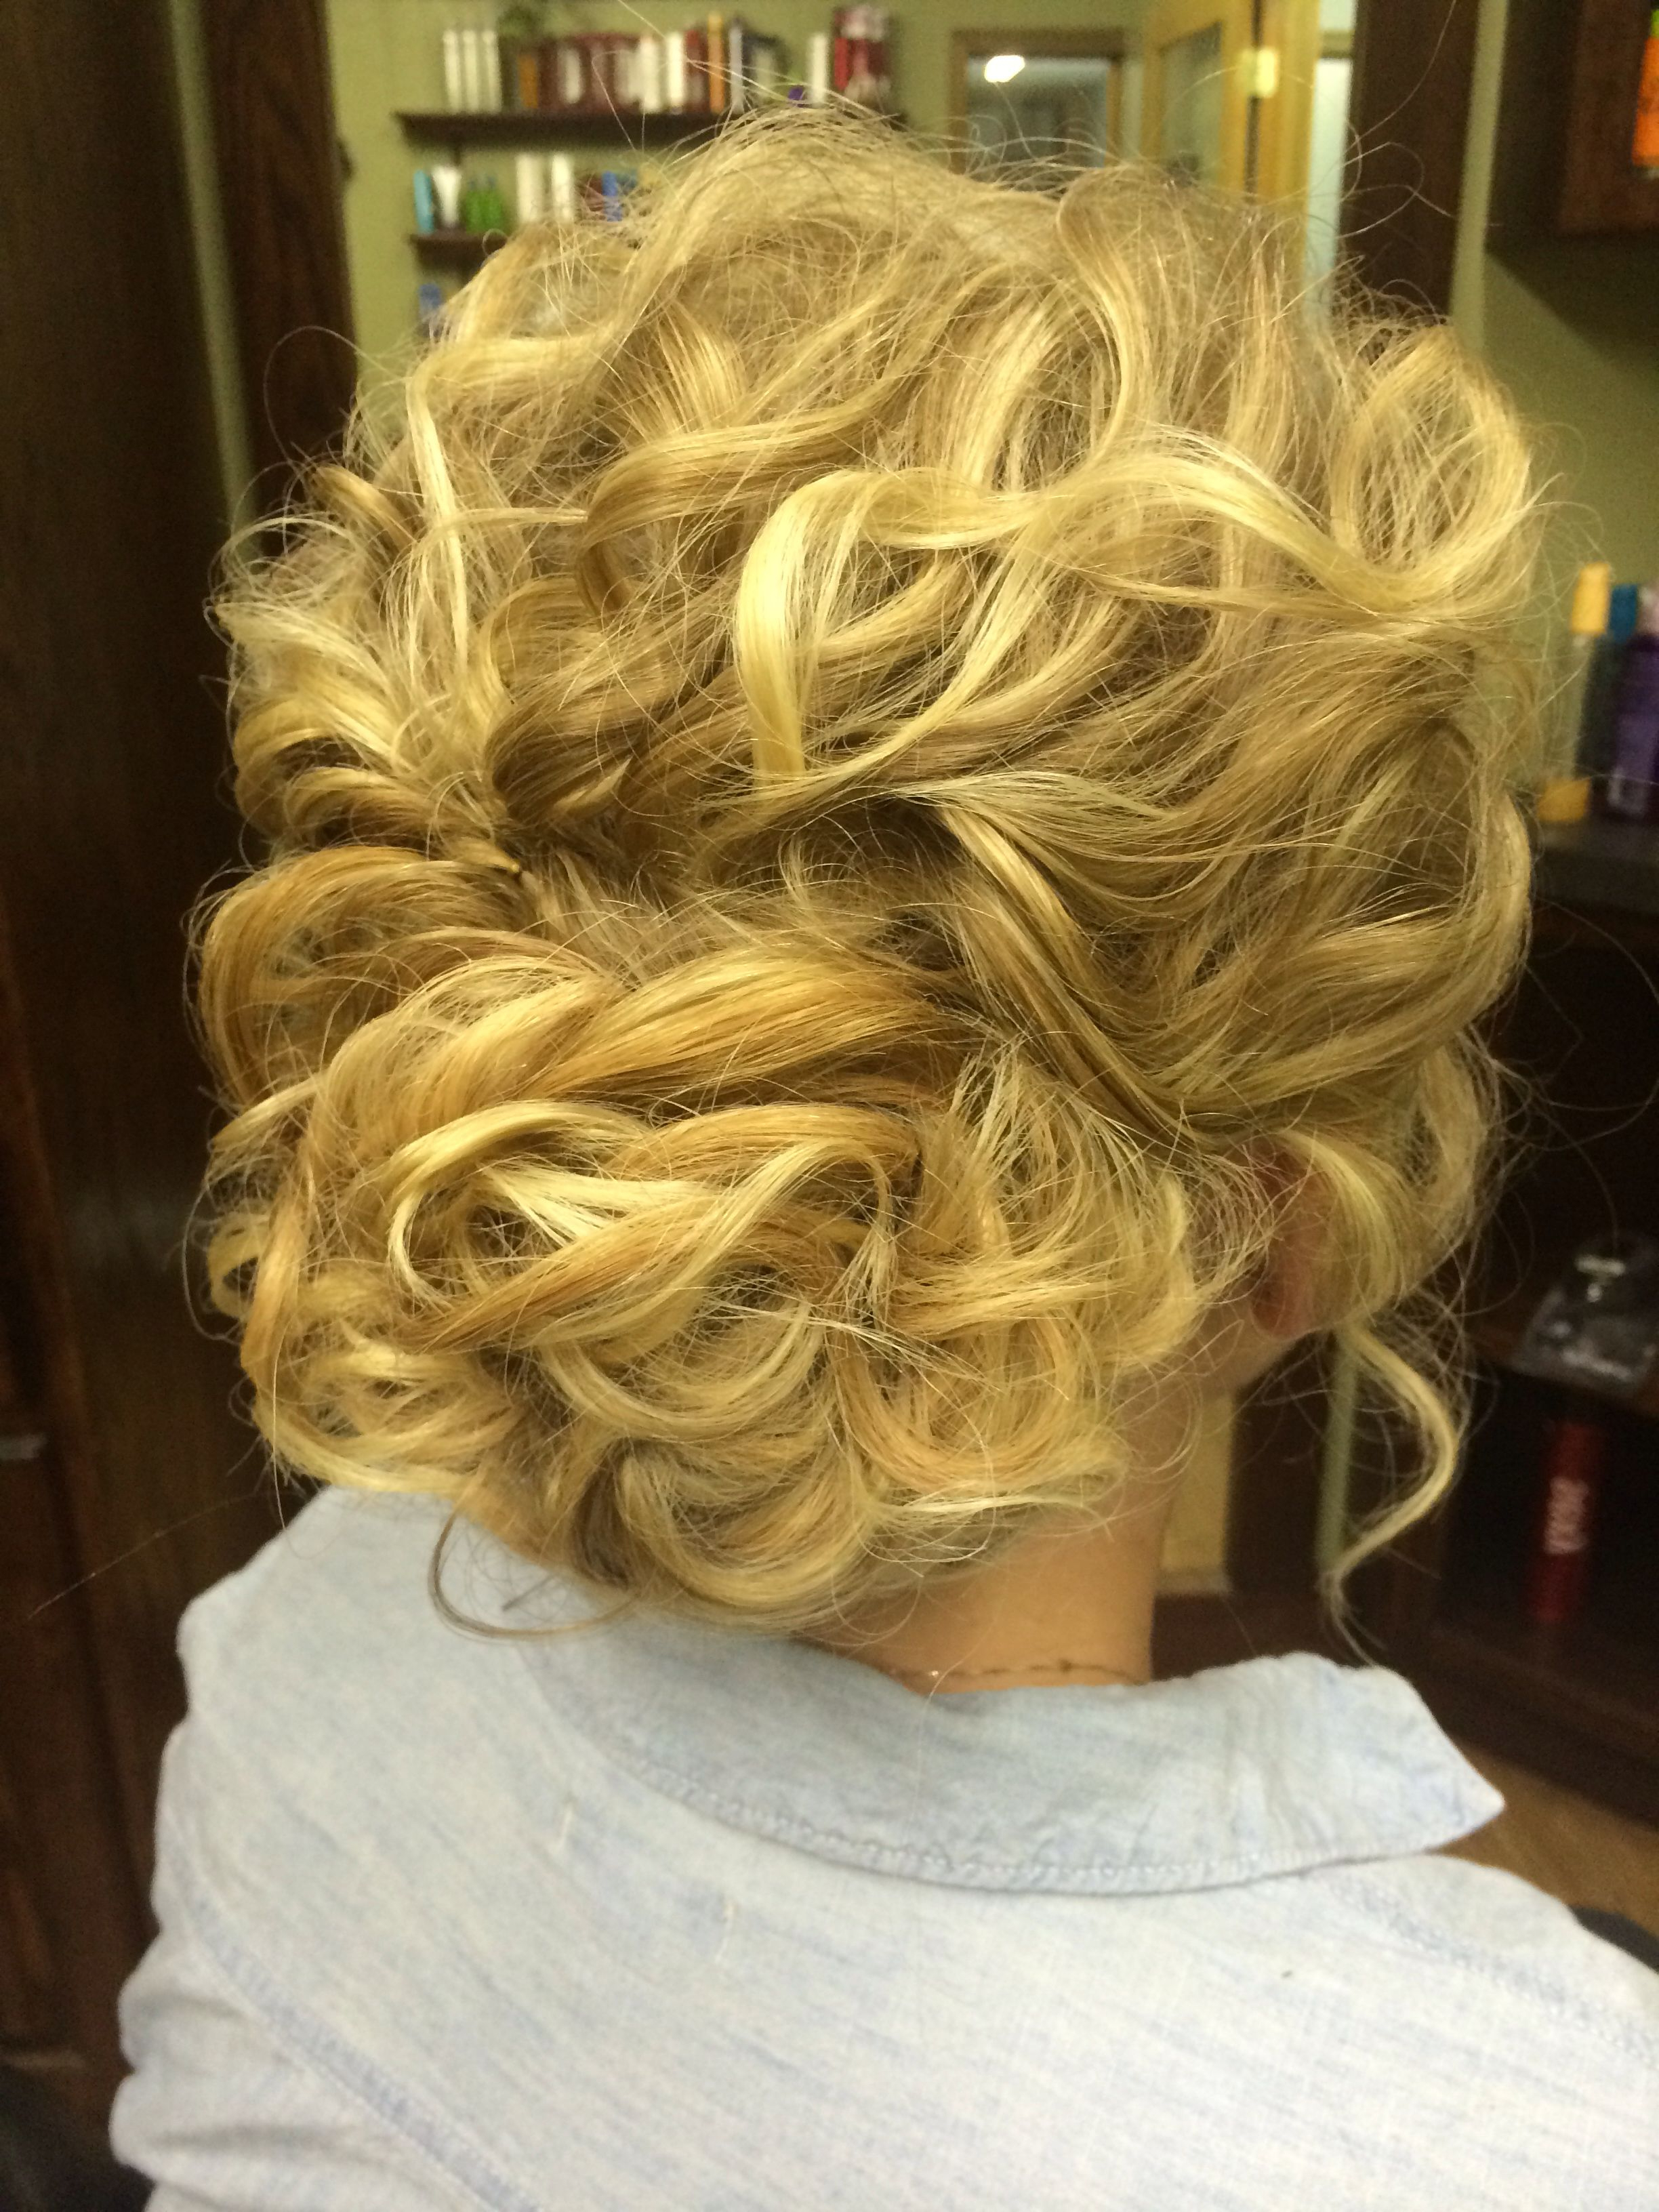 Recent Tousled Prom Updos For Long Hair With Bridesmaid Hair Tousled Curly Loose Updo For When My Hair Is Crazy (Gallery 11 of 20)